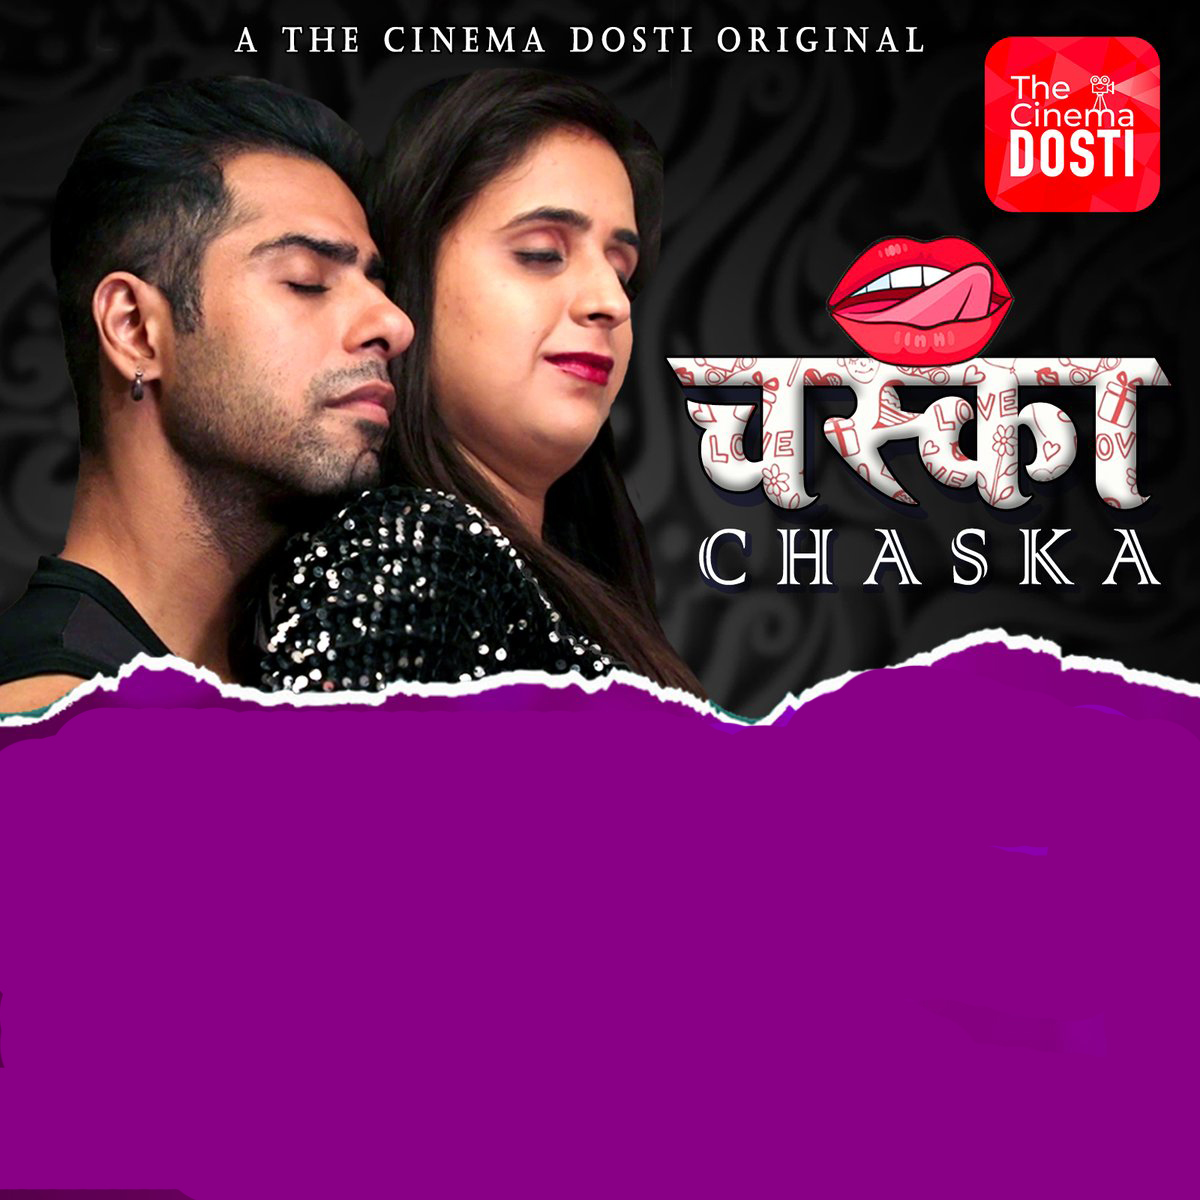 18+ Chaska 2020 CinemaDosti Originals Hindi Short Film 720p HDRip 200MB x264 AAC